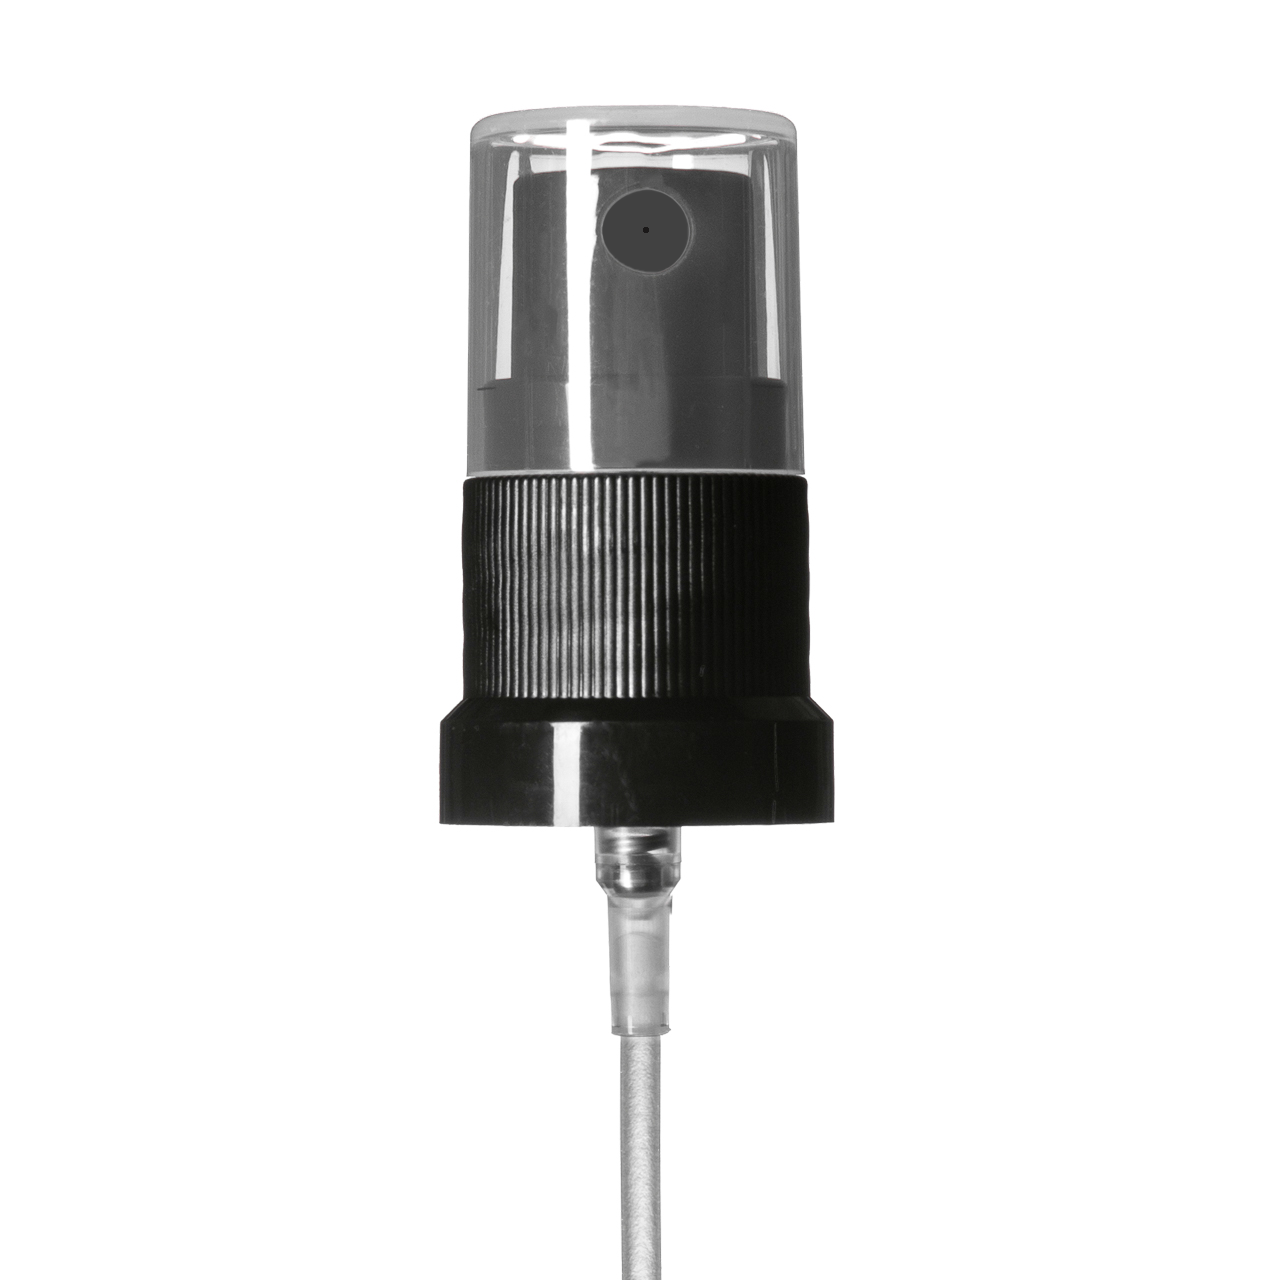 Mist sprayer Classic stepped, DIN18, PP, black, ribbed, dose 0.14 ml, with transparent overcap (for Orion 100 ml)